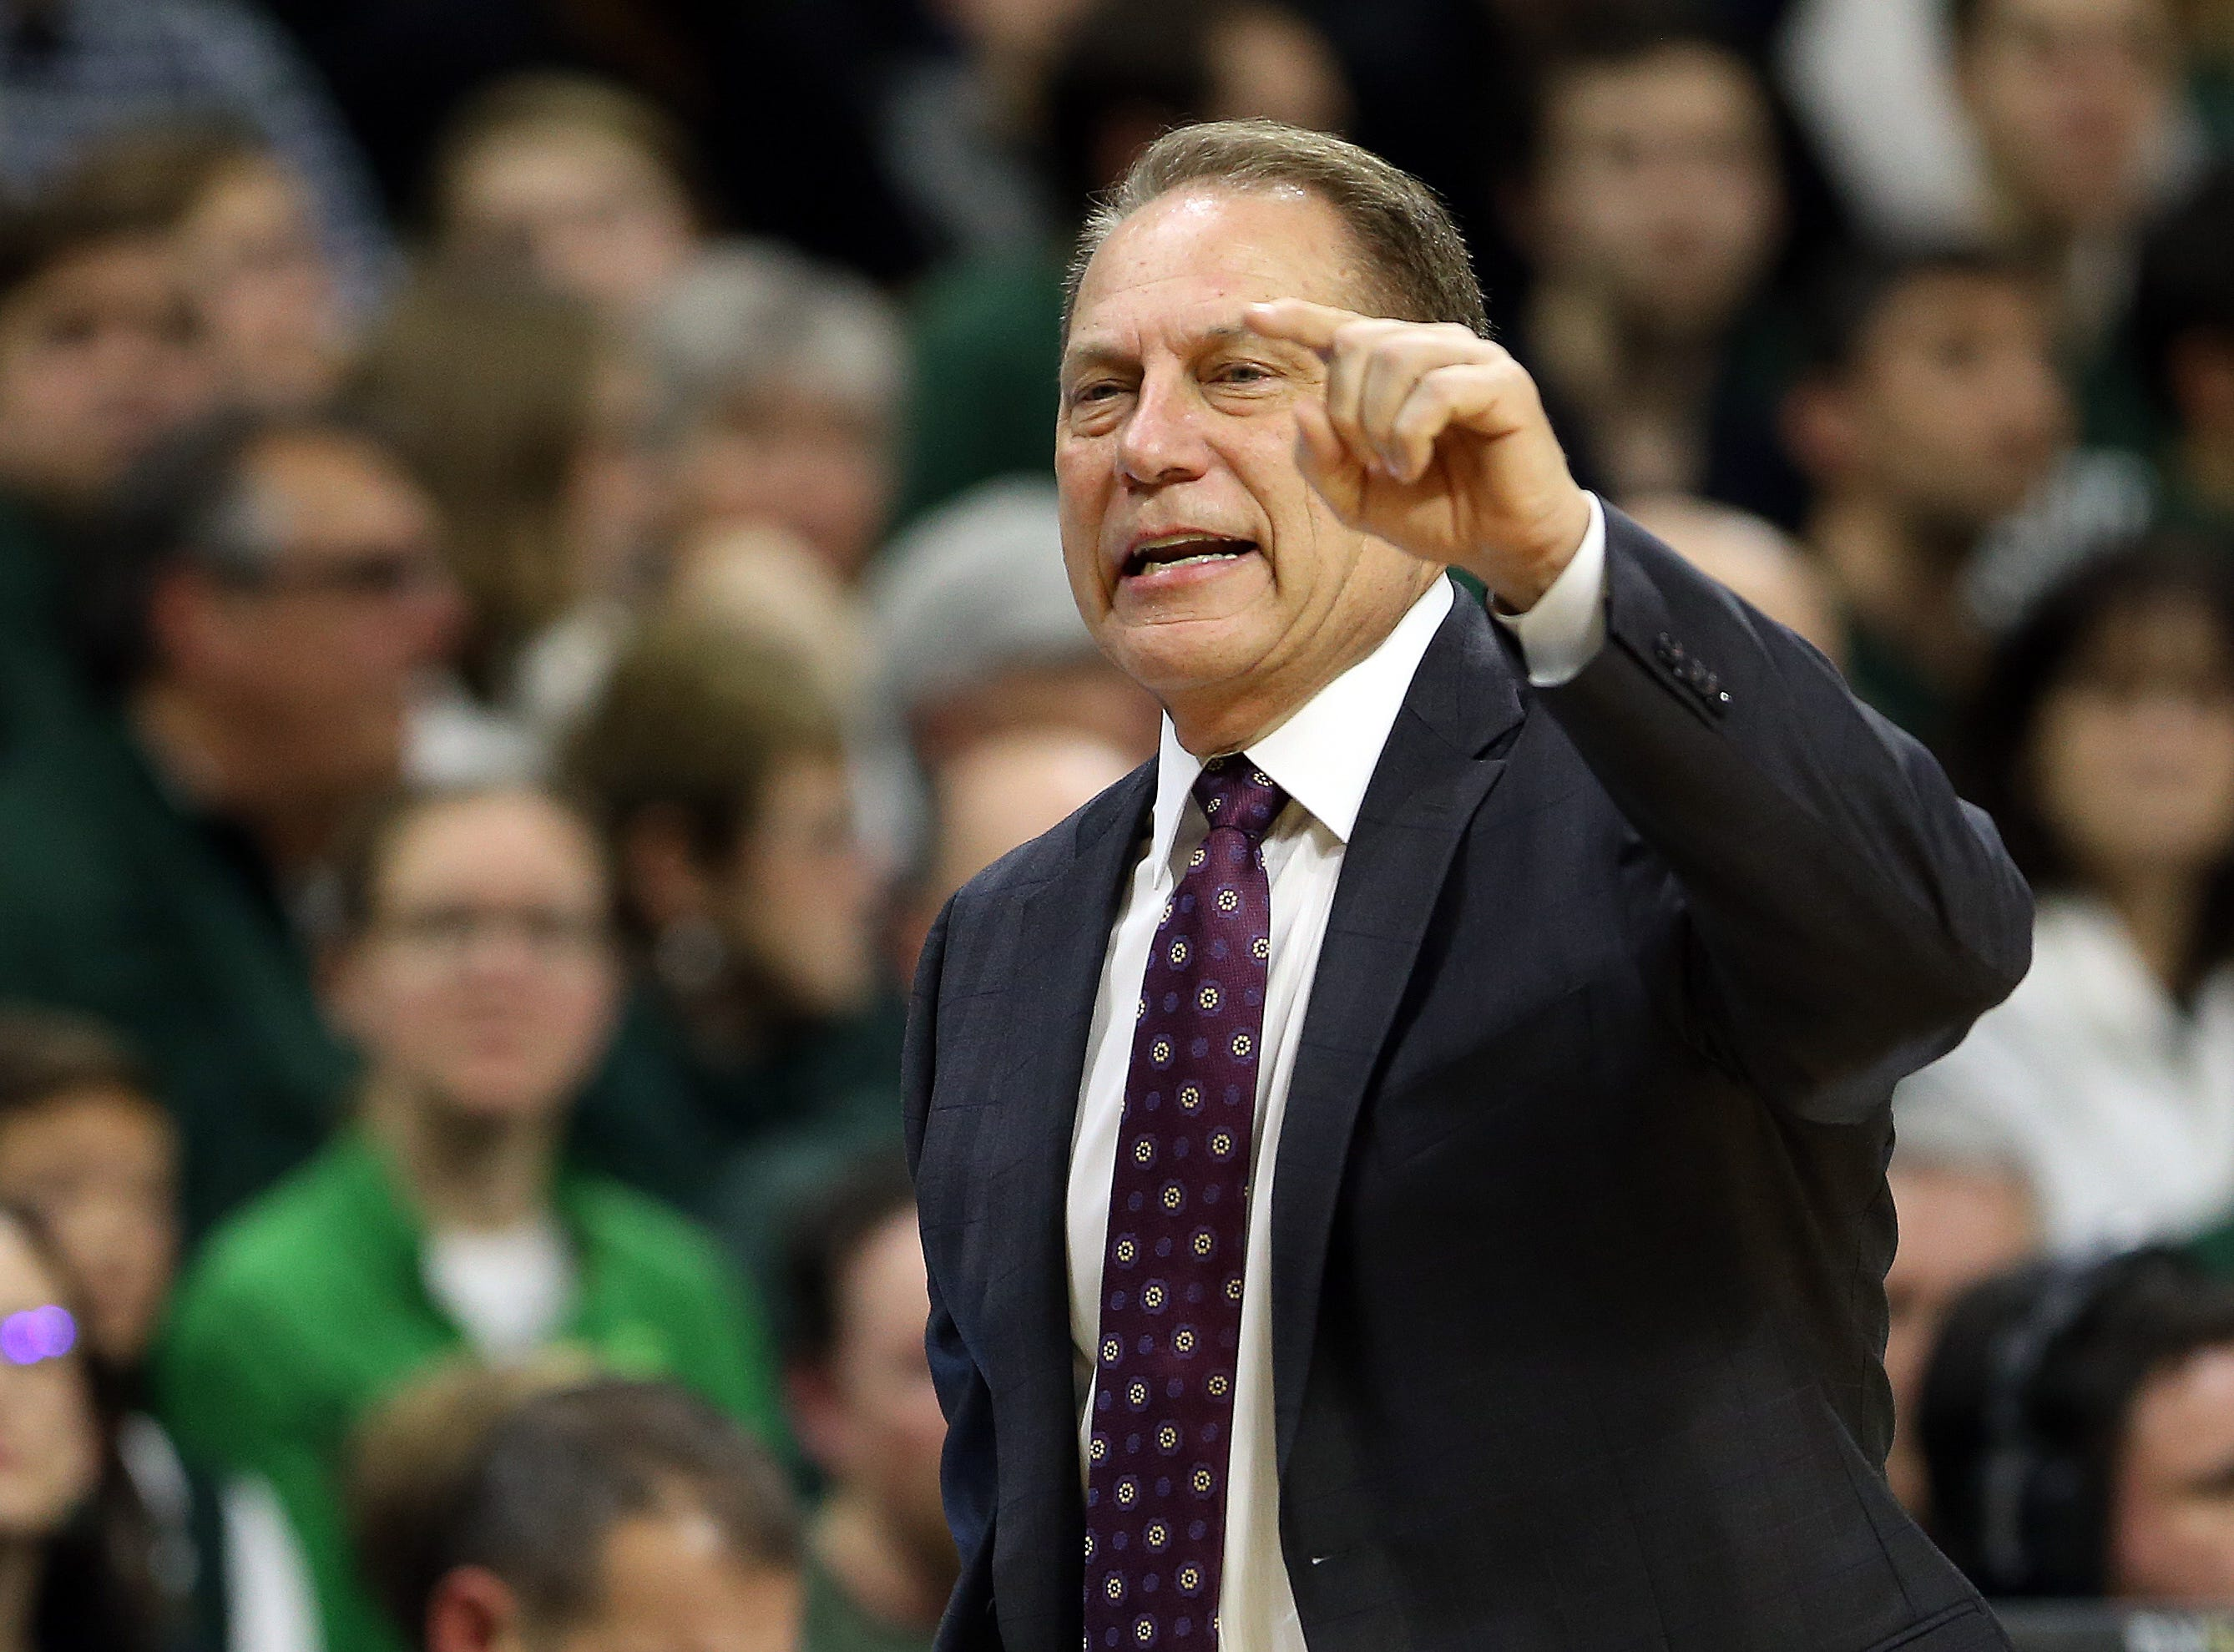 Jan 2, 2019; East Lansing, MI, USA; Michigan State Spartans head coach Tom Izoo reacts during the first half of a game against the Northwestern Wildcats at the Breslin Center. Mandatory Credit: Mike Carter-USA TODAY Sports